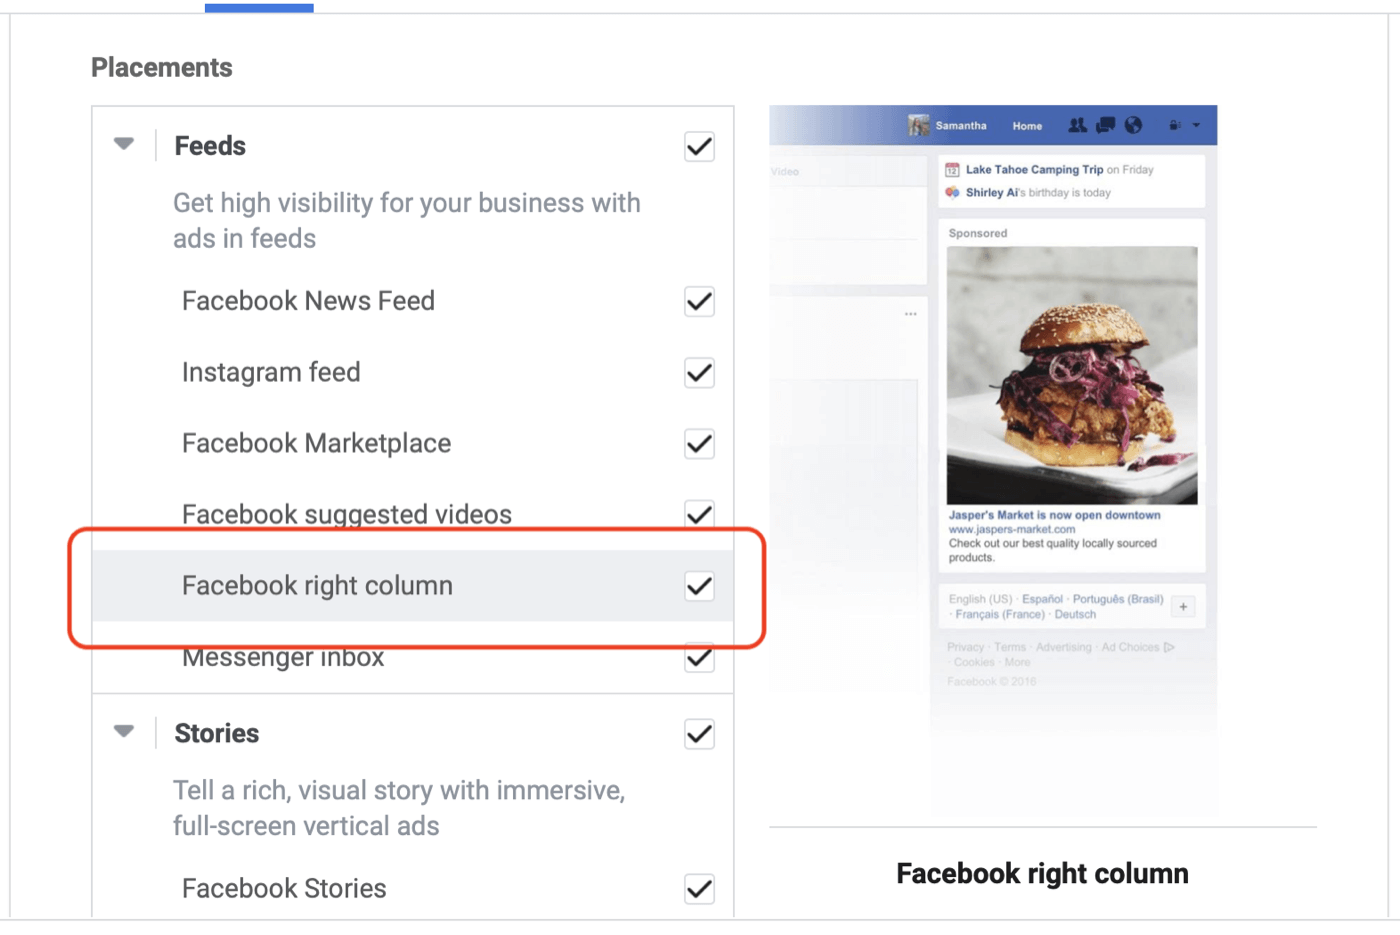 Facebook Ad Placements for Marketers: How to Make the Right